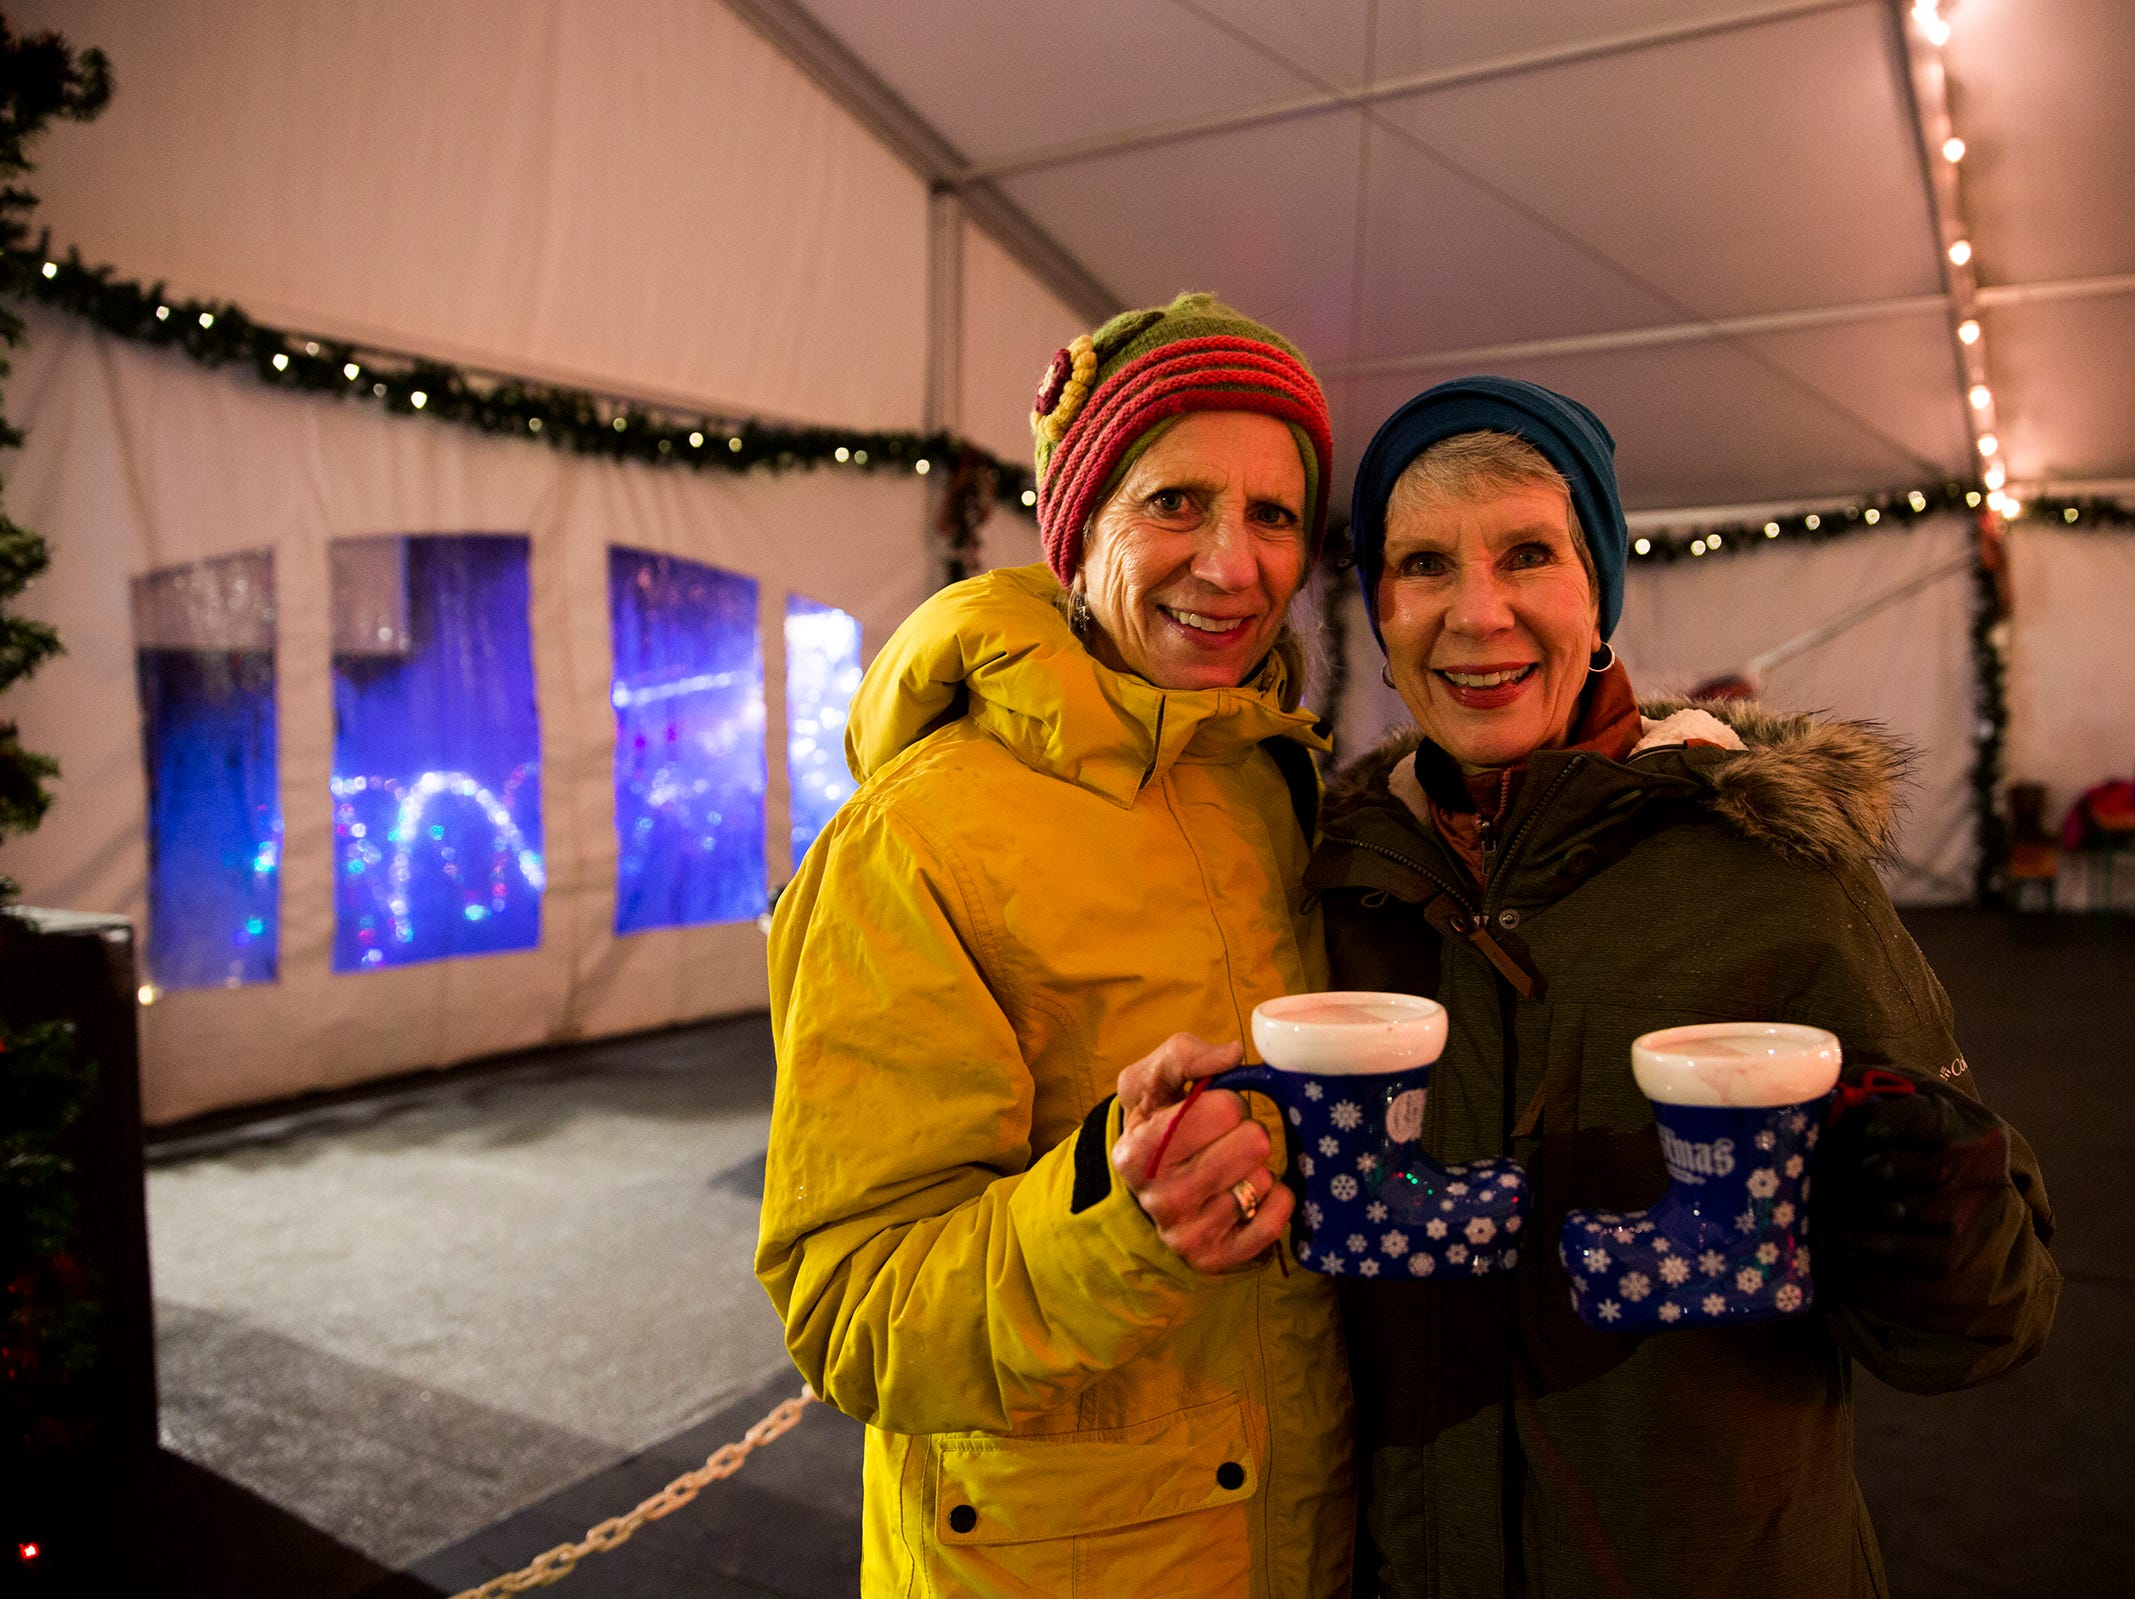 Barbara Luscher (left) shows her sister Marsha Fairbrook (right) around  Christmas in the Garden at the Oregon Garden Resort on Wednesday, Nov. 28, 2018, in Silverton. The winter wonderland, which features one million lights, is on display through Dec. 31.